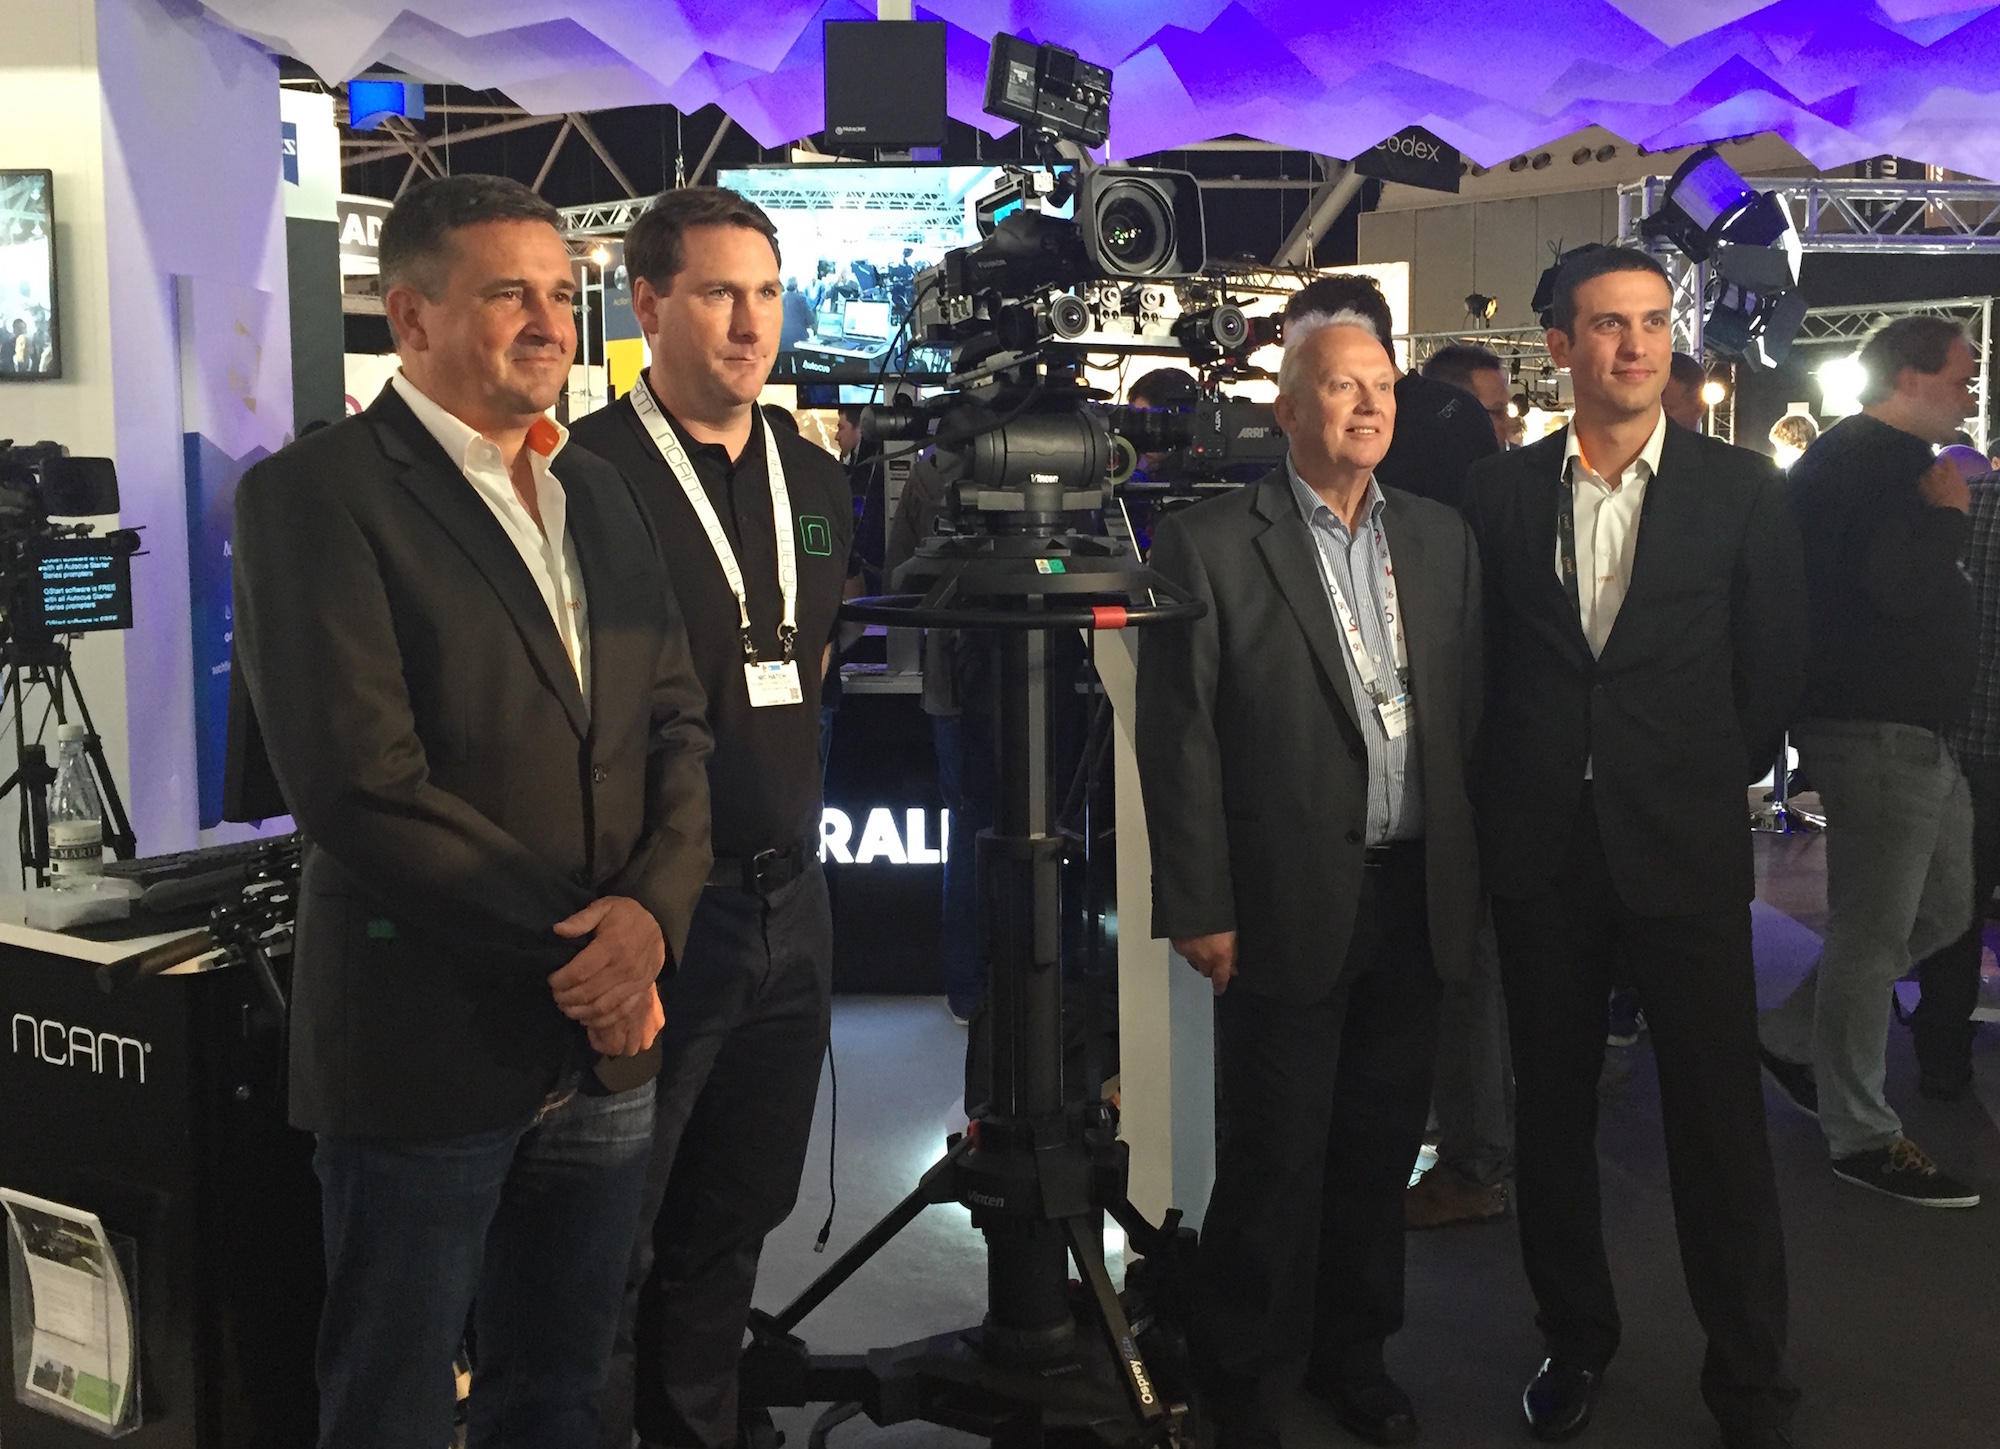 The NCAM deal was announced at the recent IBC 2015 show in Amsterdam.